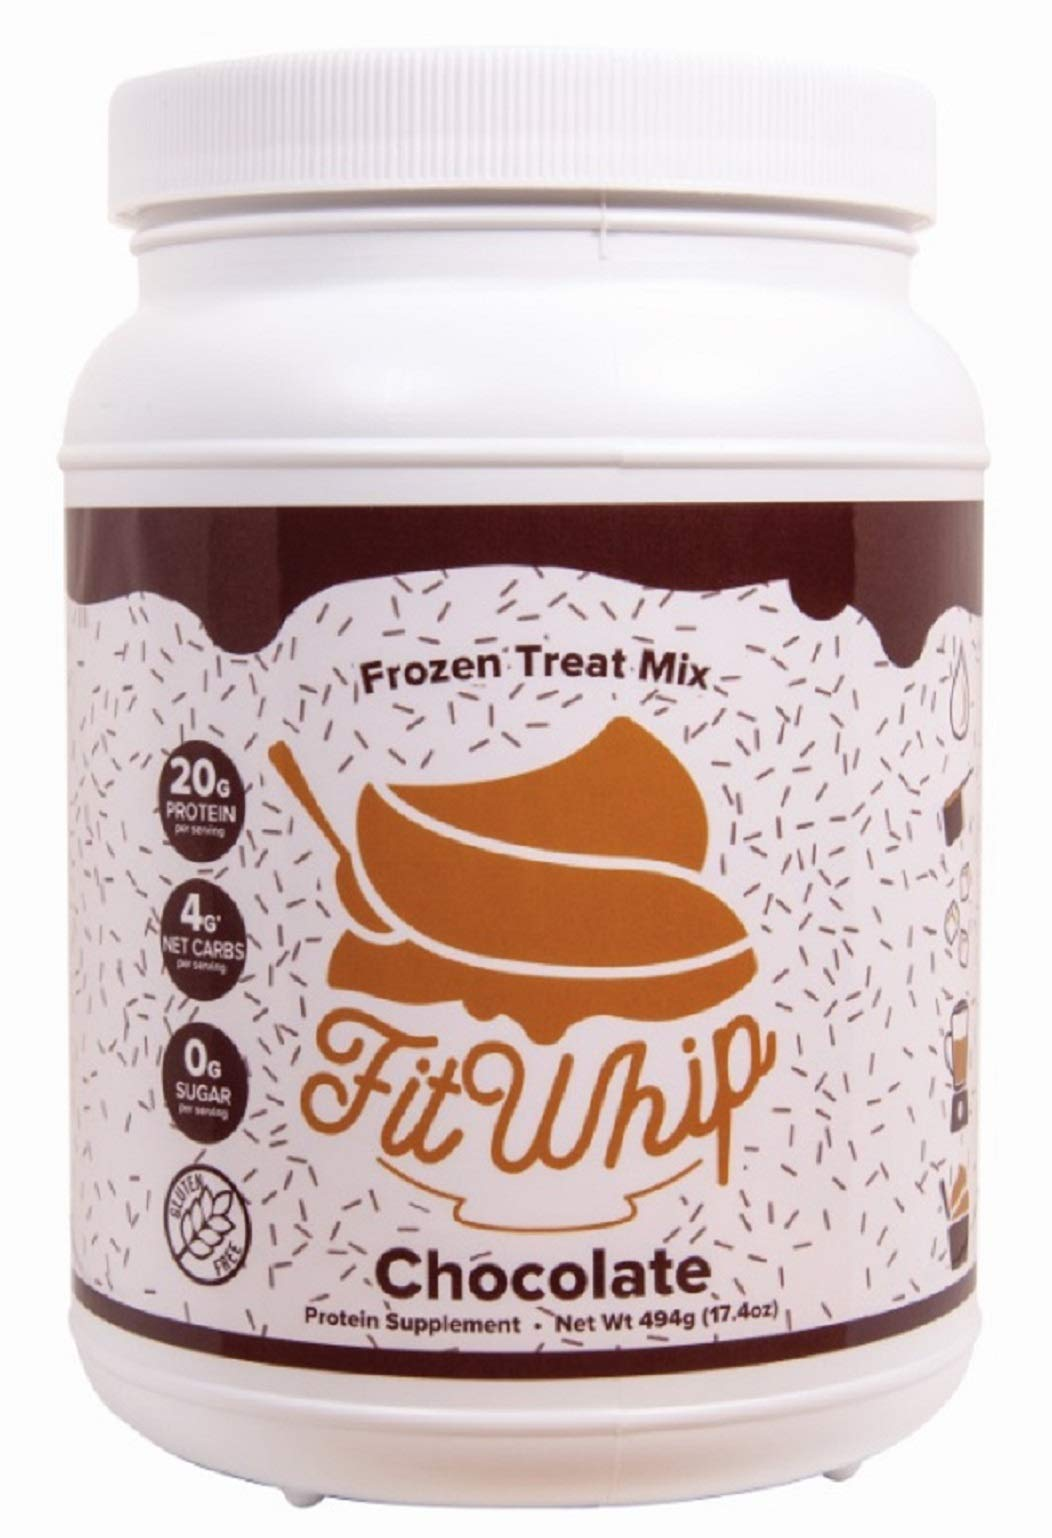 Fit Whip Frozen Treat Mix, Chocolate Flavor   High Protein   Low Carb   Low Fat   High Fiber   Sugar Free   Gluten Free   Keto Friendly   Macro Friendly   WW Friendly   13 Servings